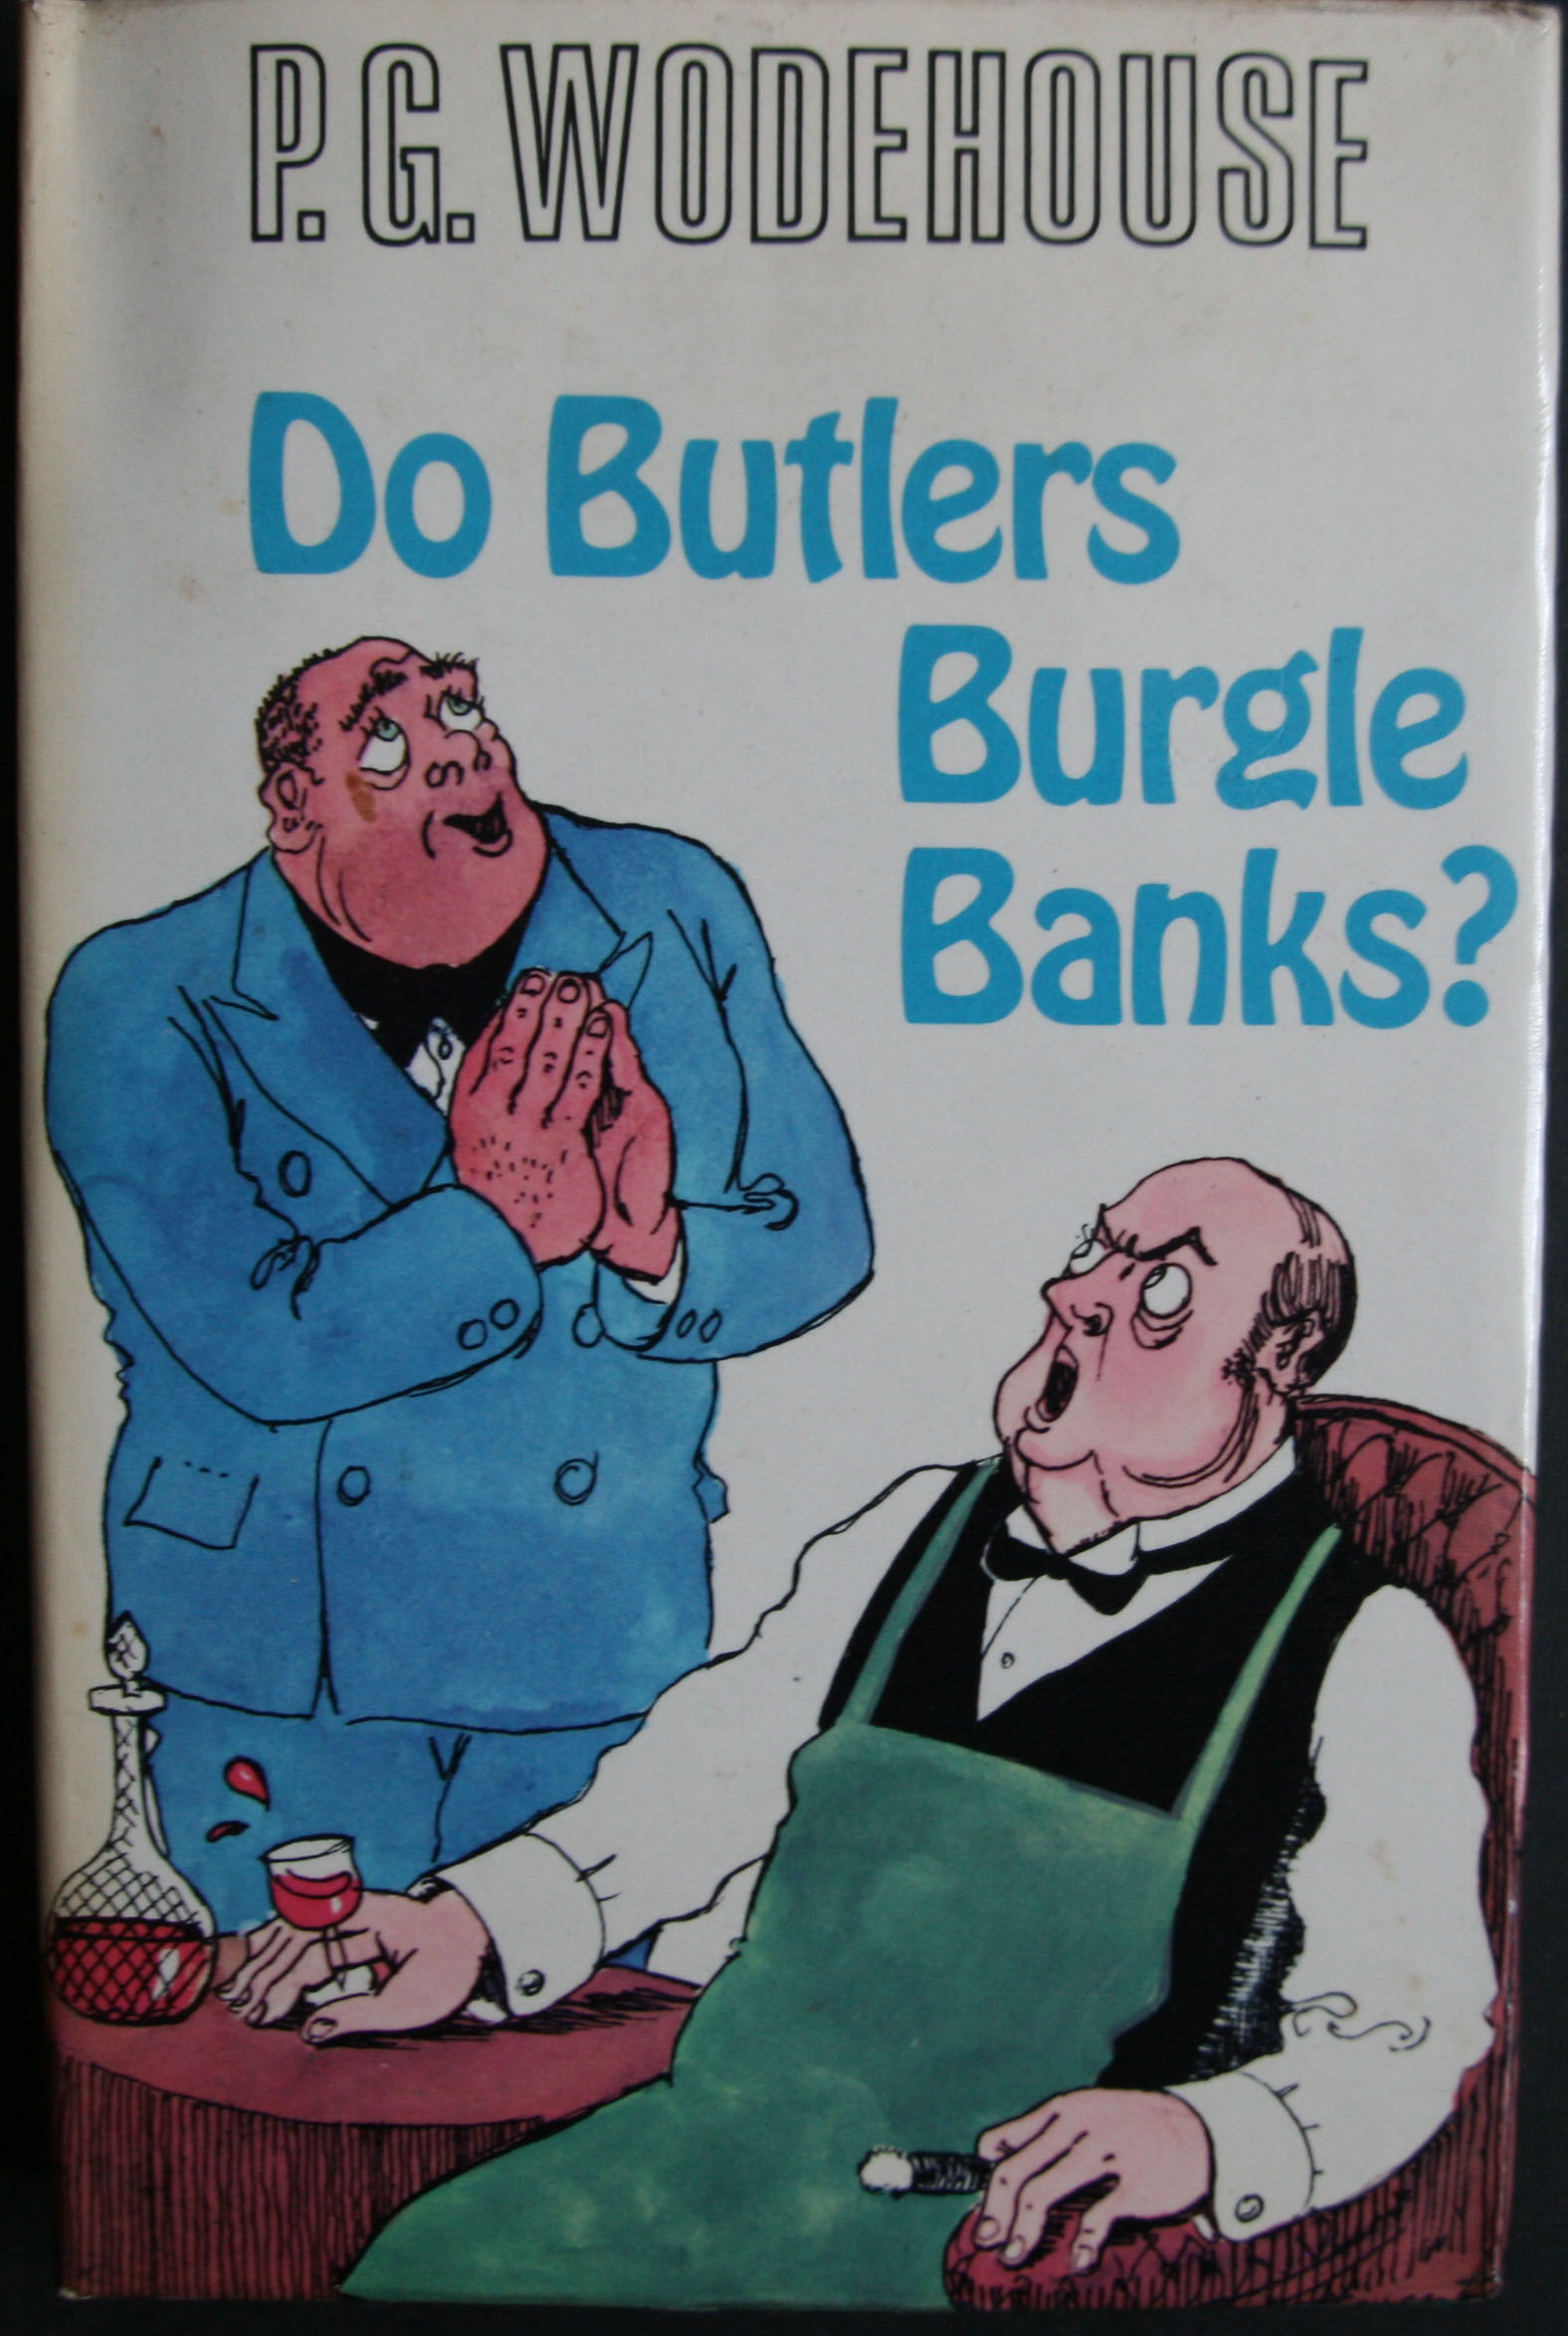 P G Wodehouse Do butlers burgle banks